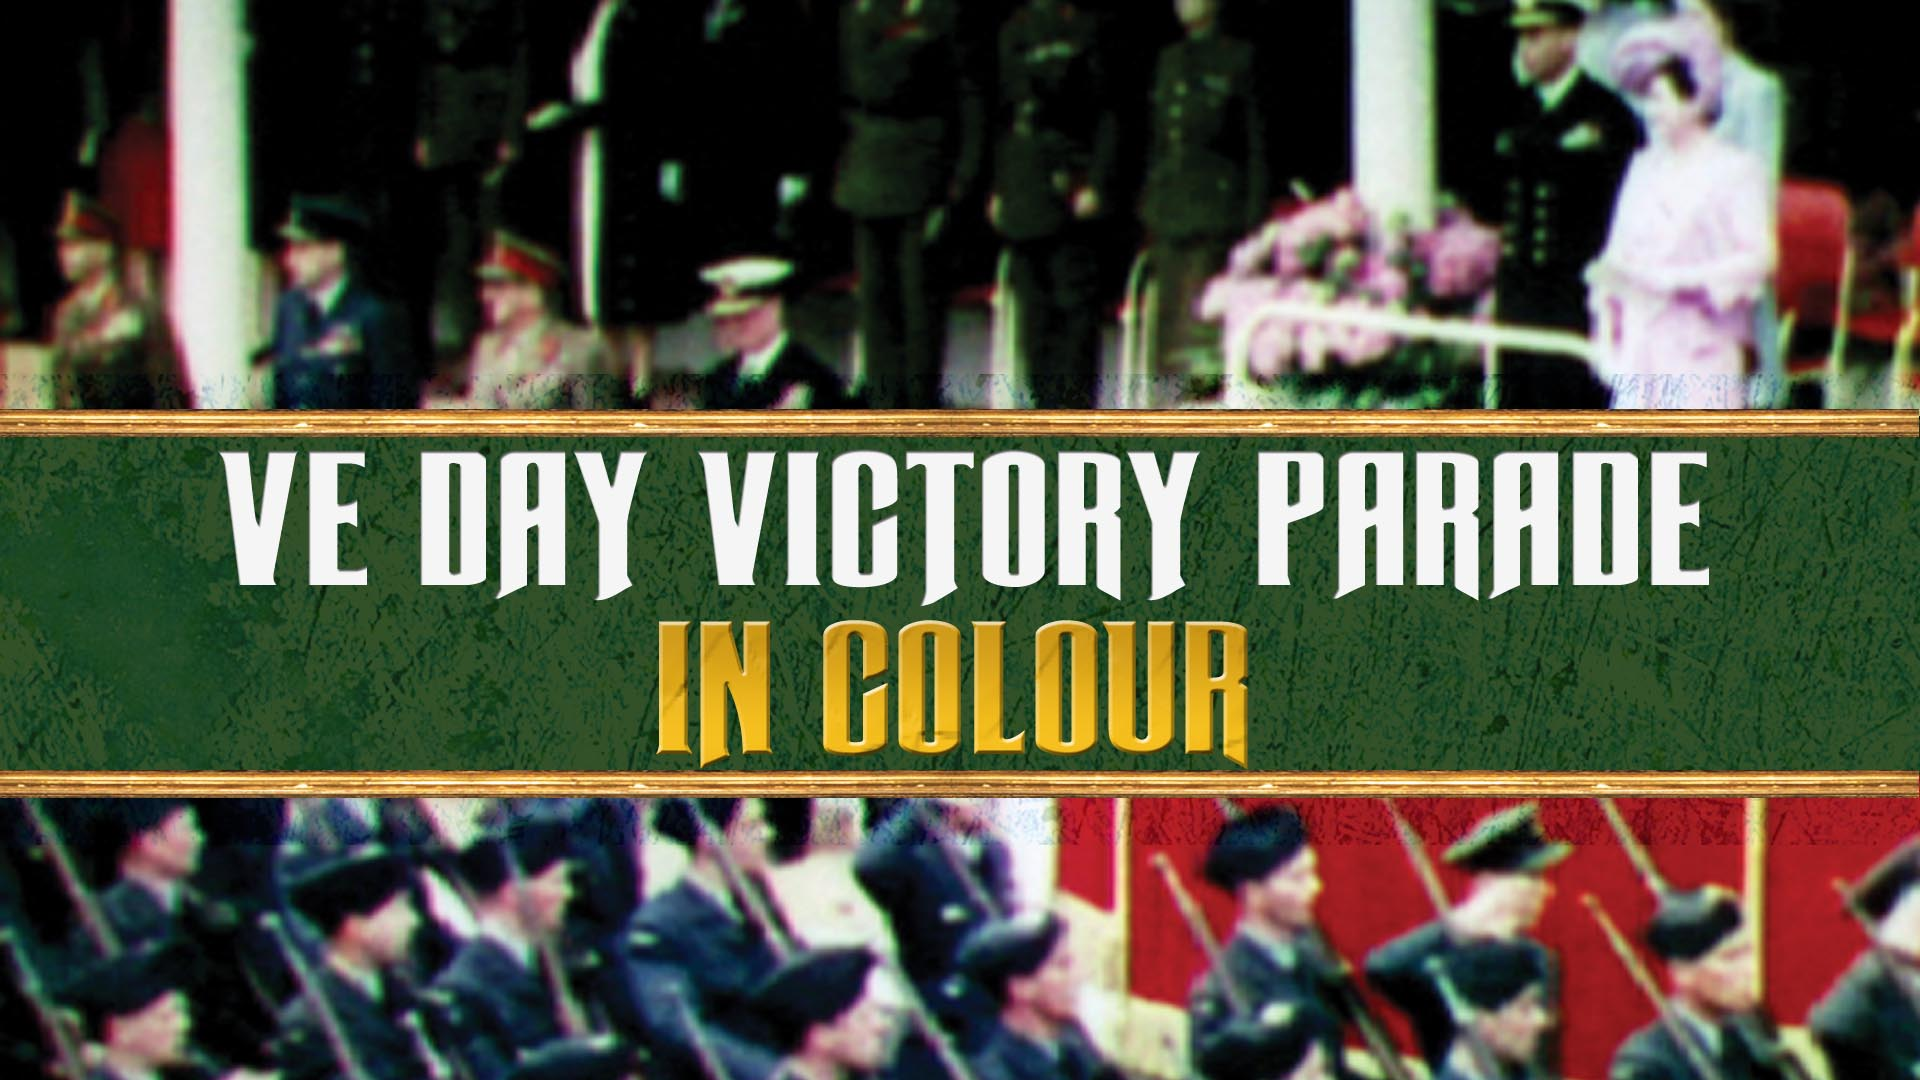 VE Day Victory Parade in Colour -